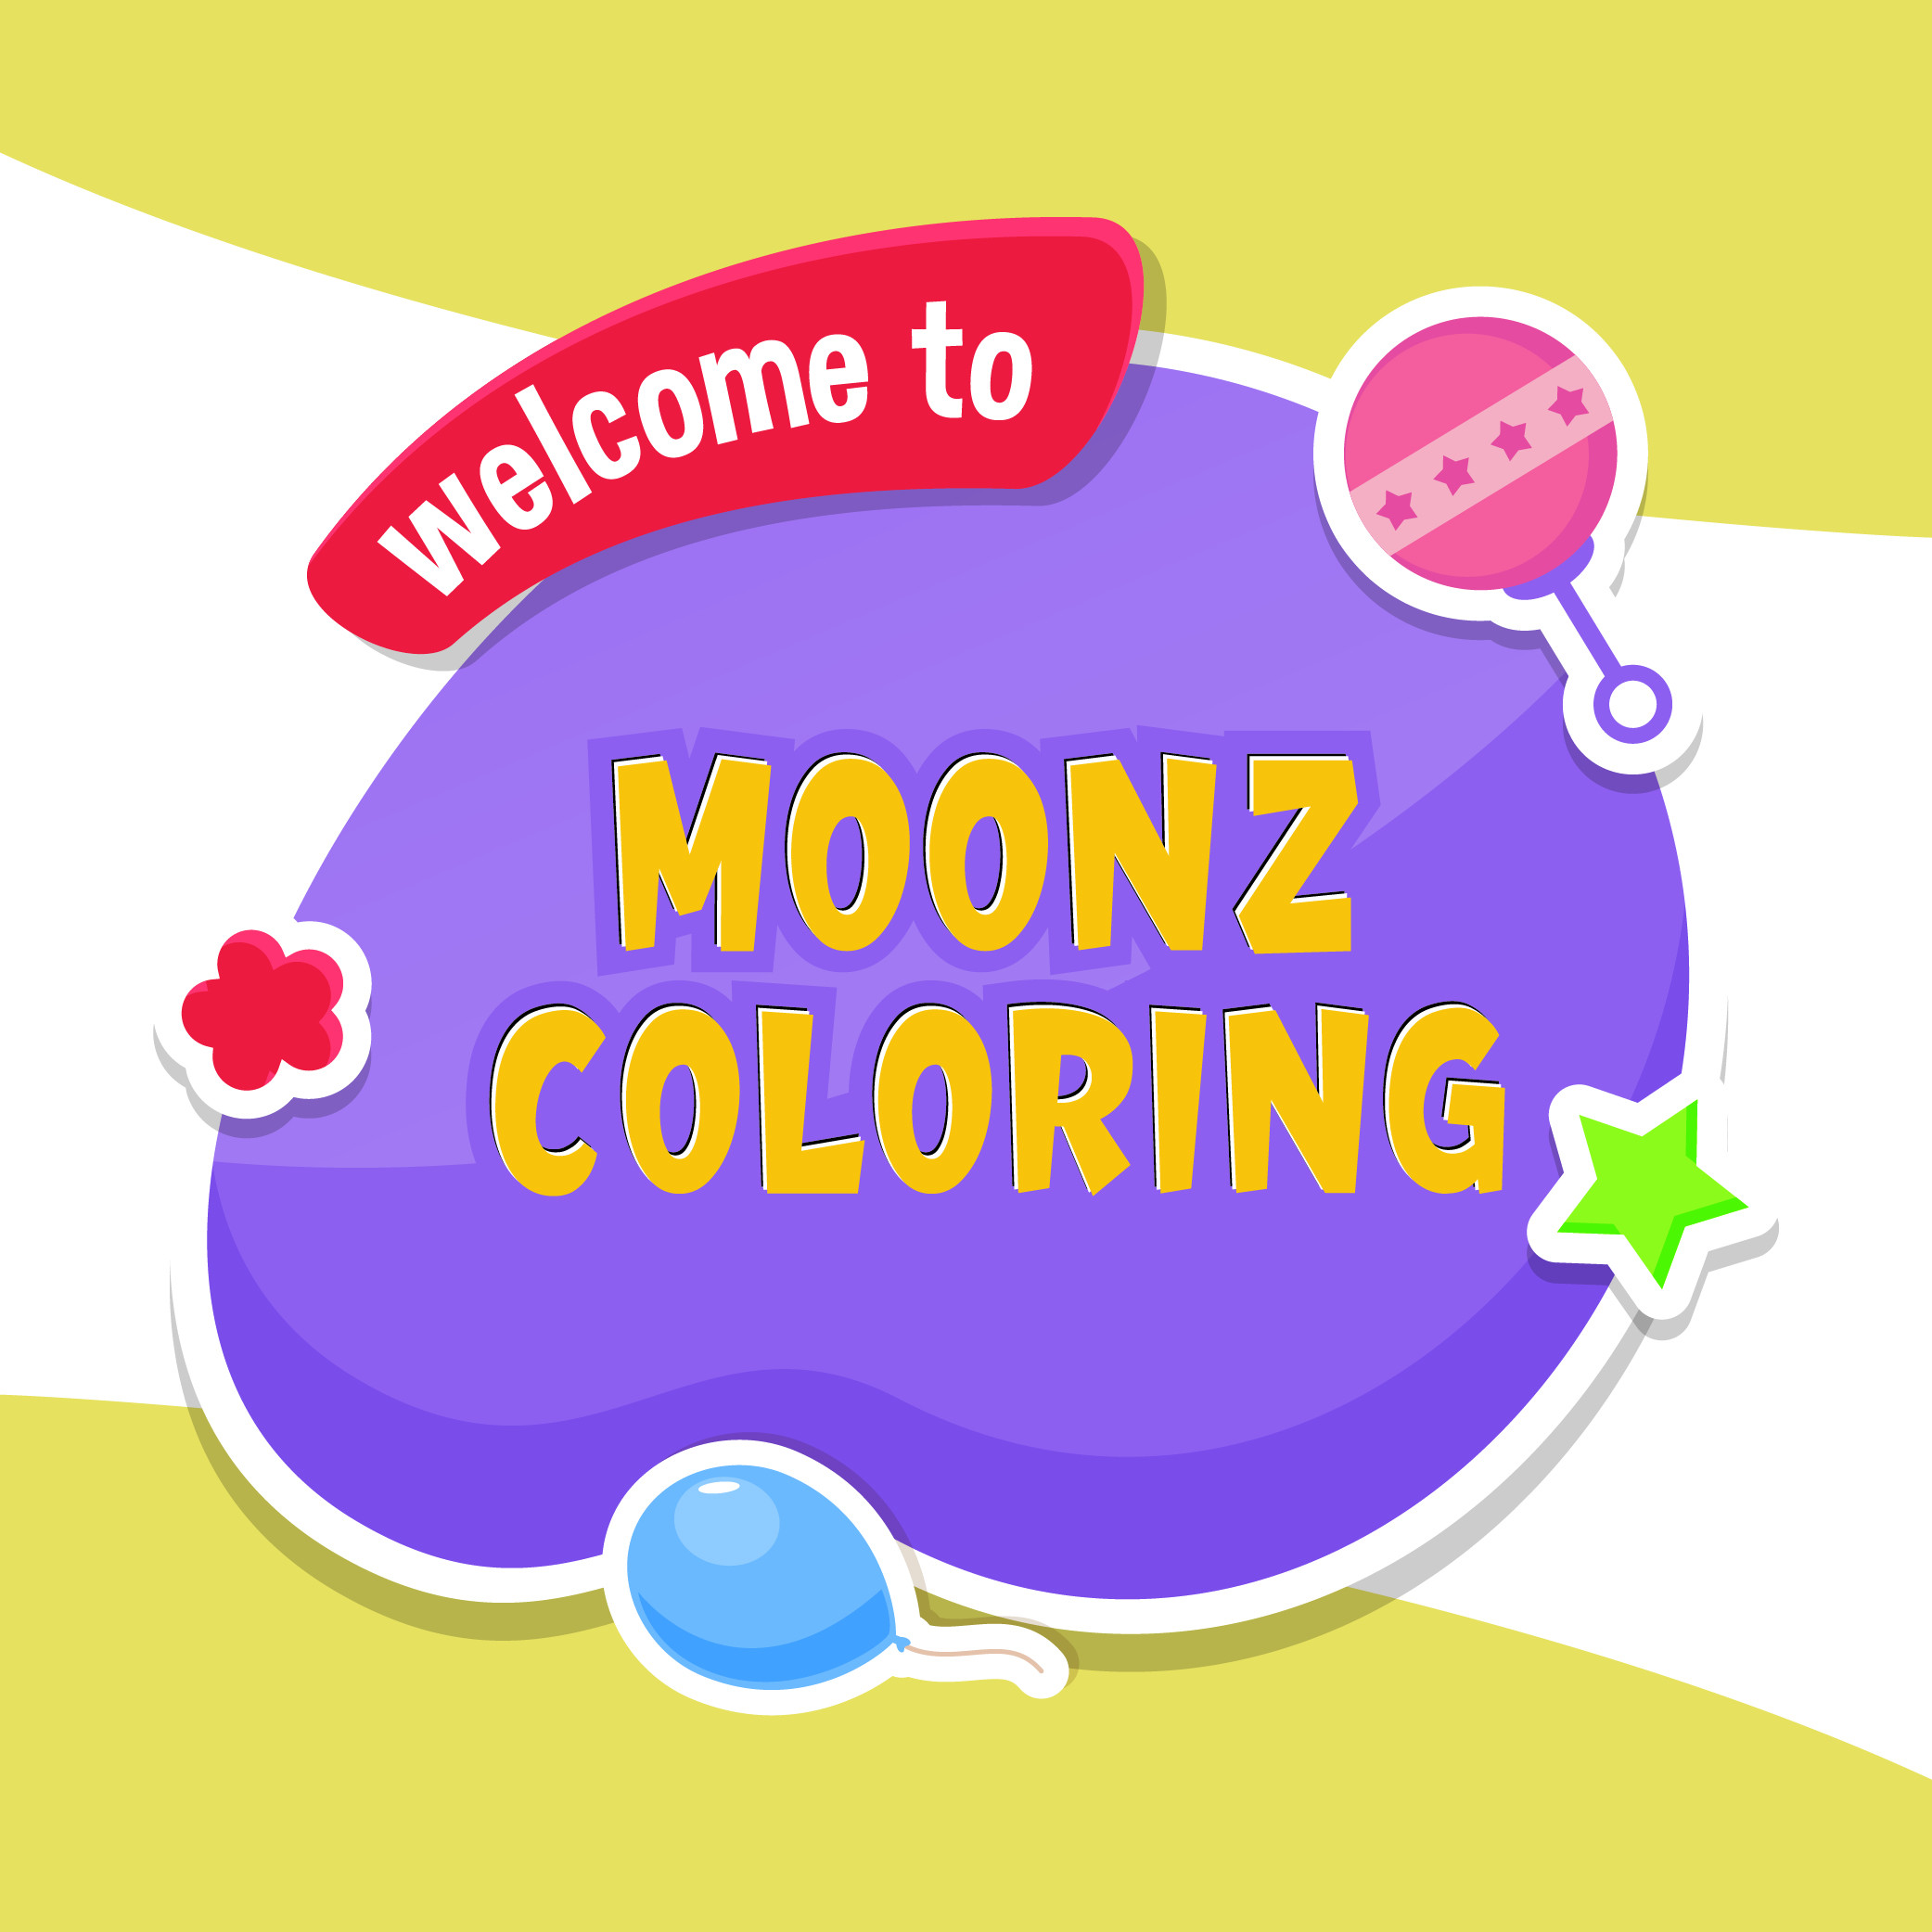 Moonz Coloring's profile picture